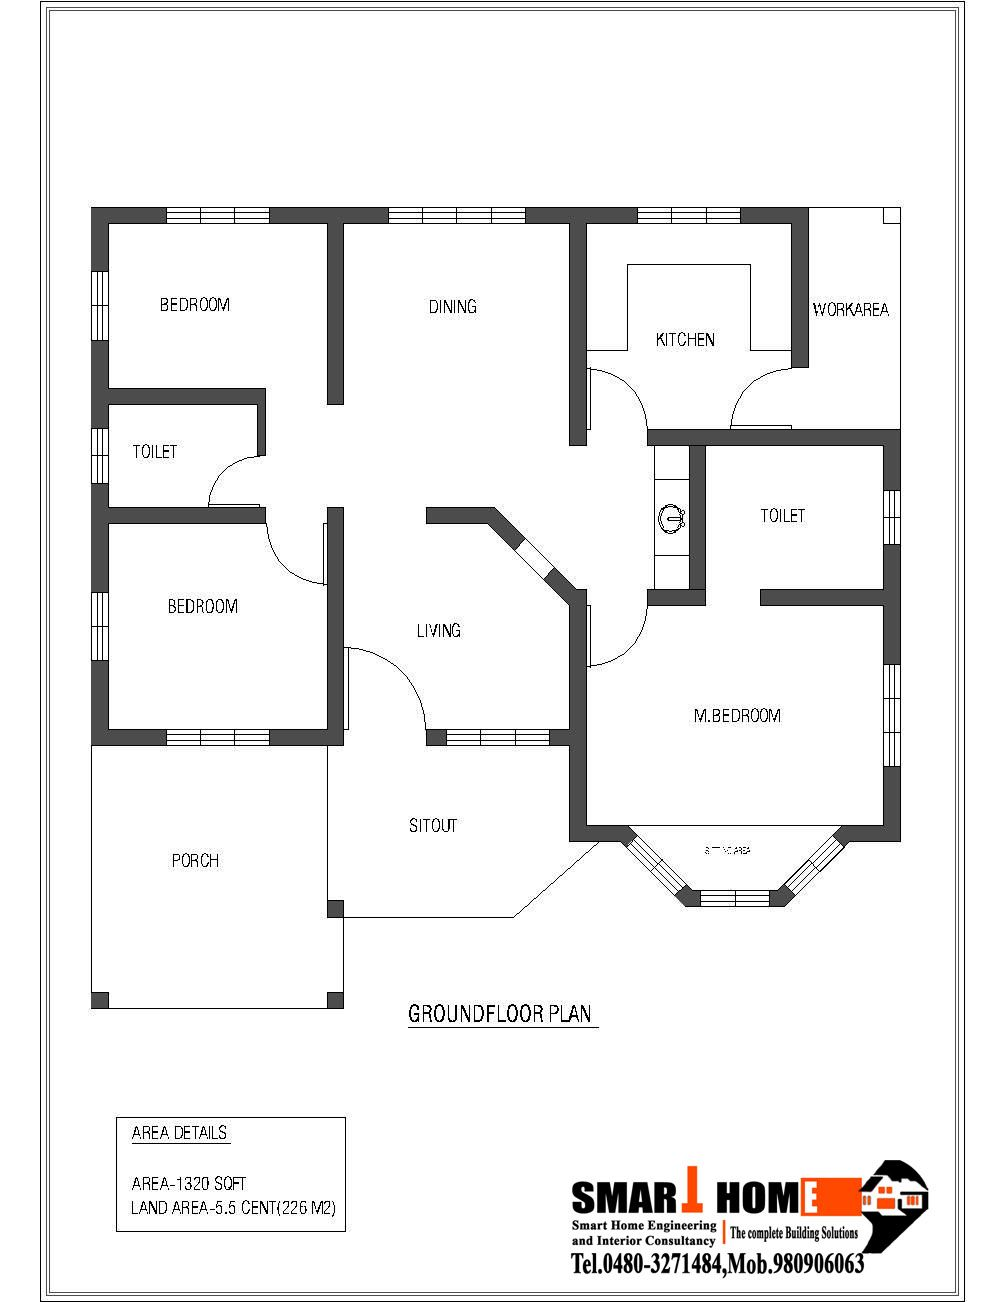 049eb4ca8d3327b0d9bb4ca819aa689d 1320 sqft kerala style 3 bedroom house plan from smart home gf,Plan Of Three Bedroom House